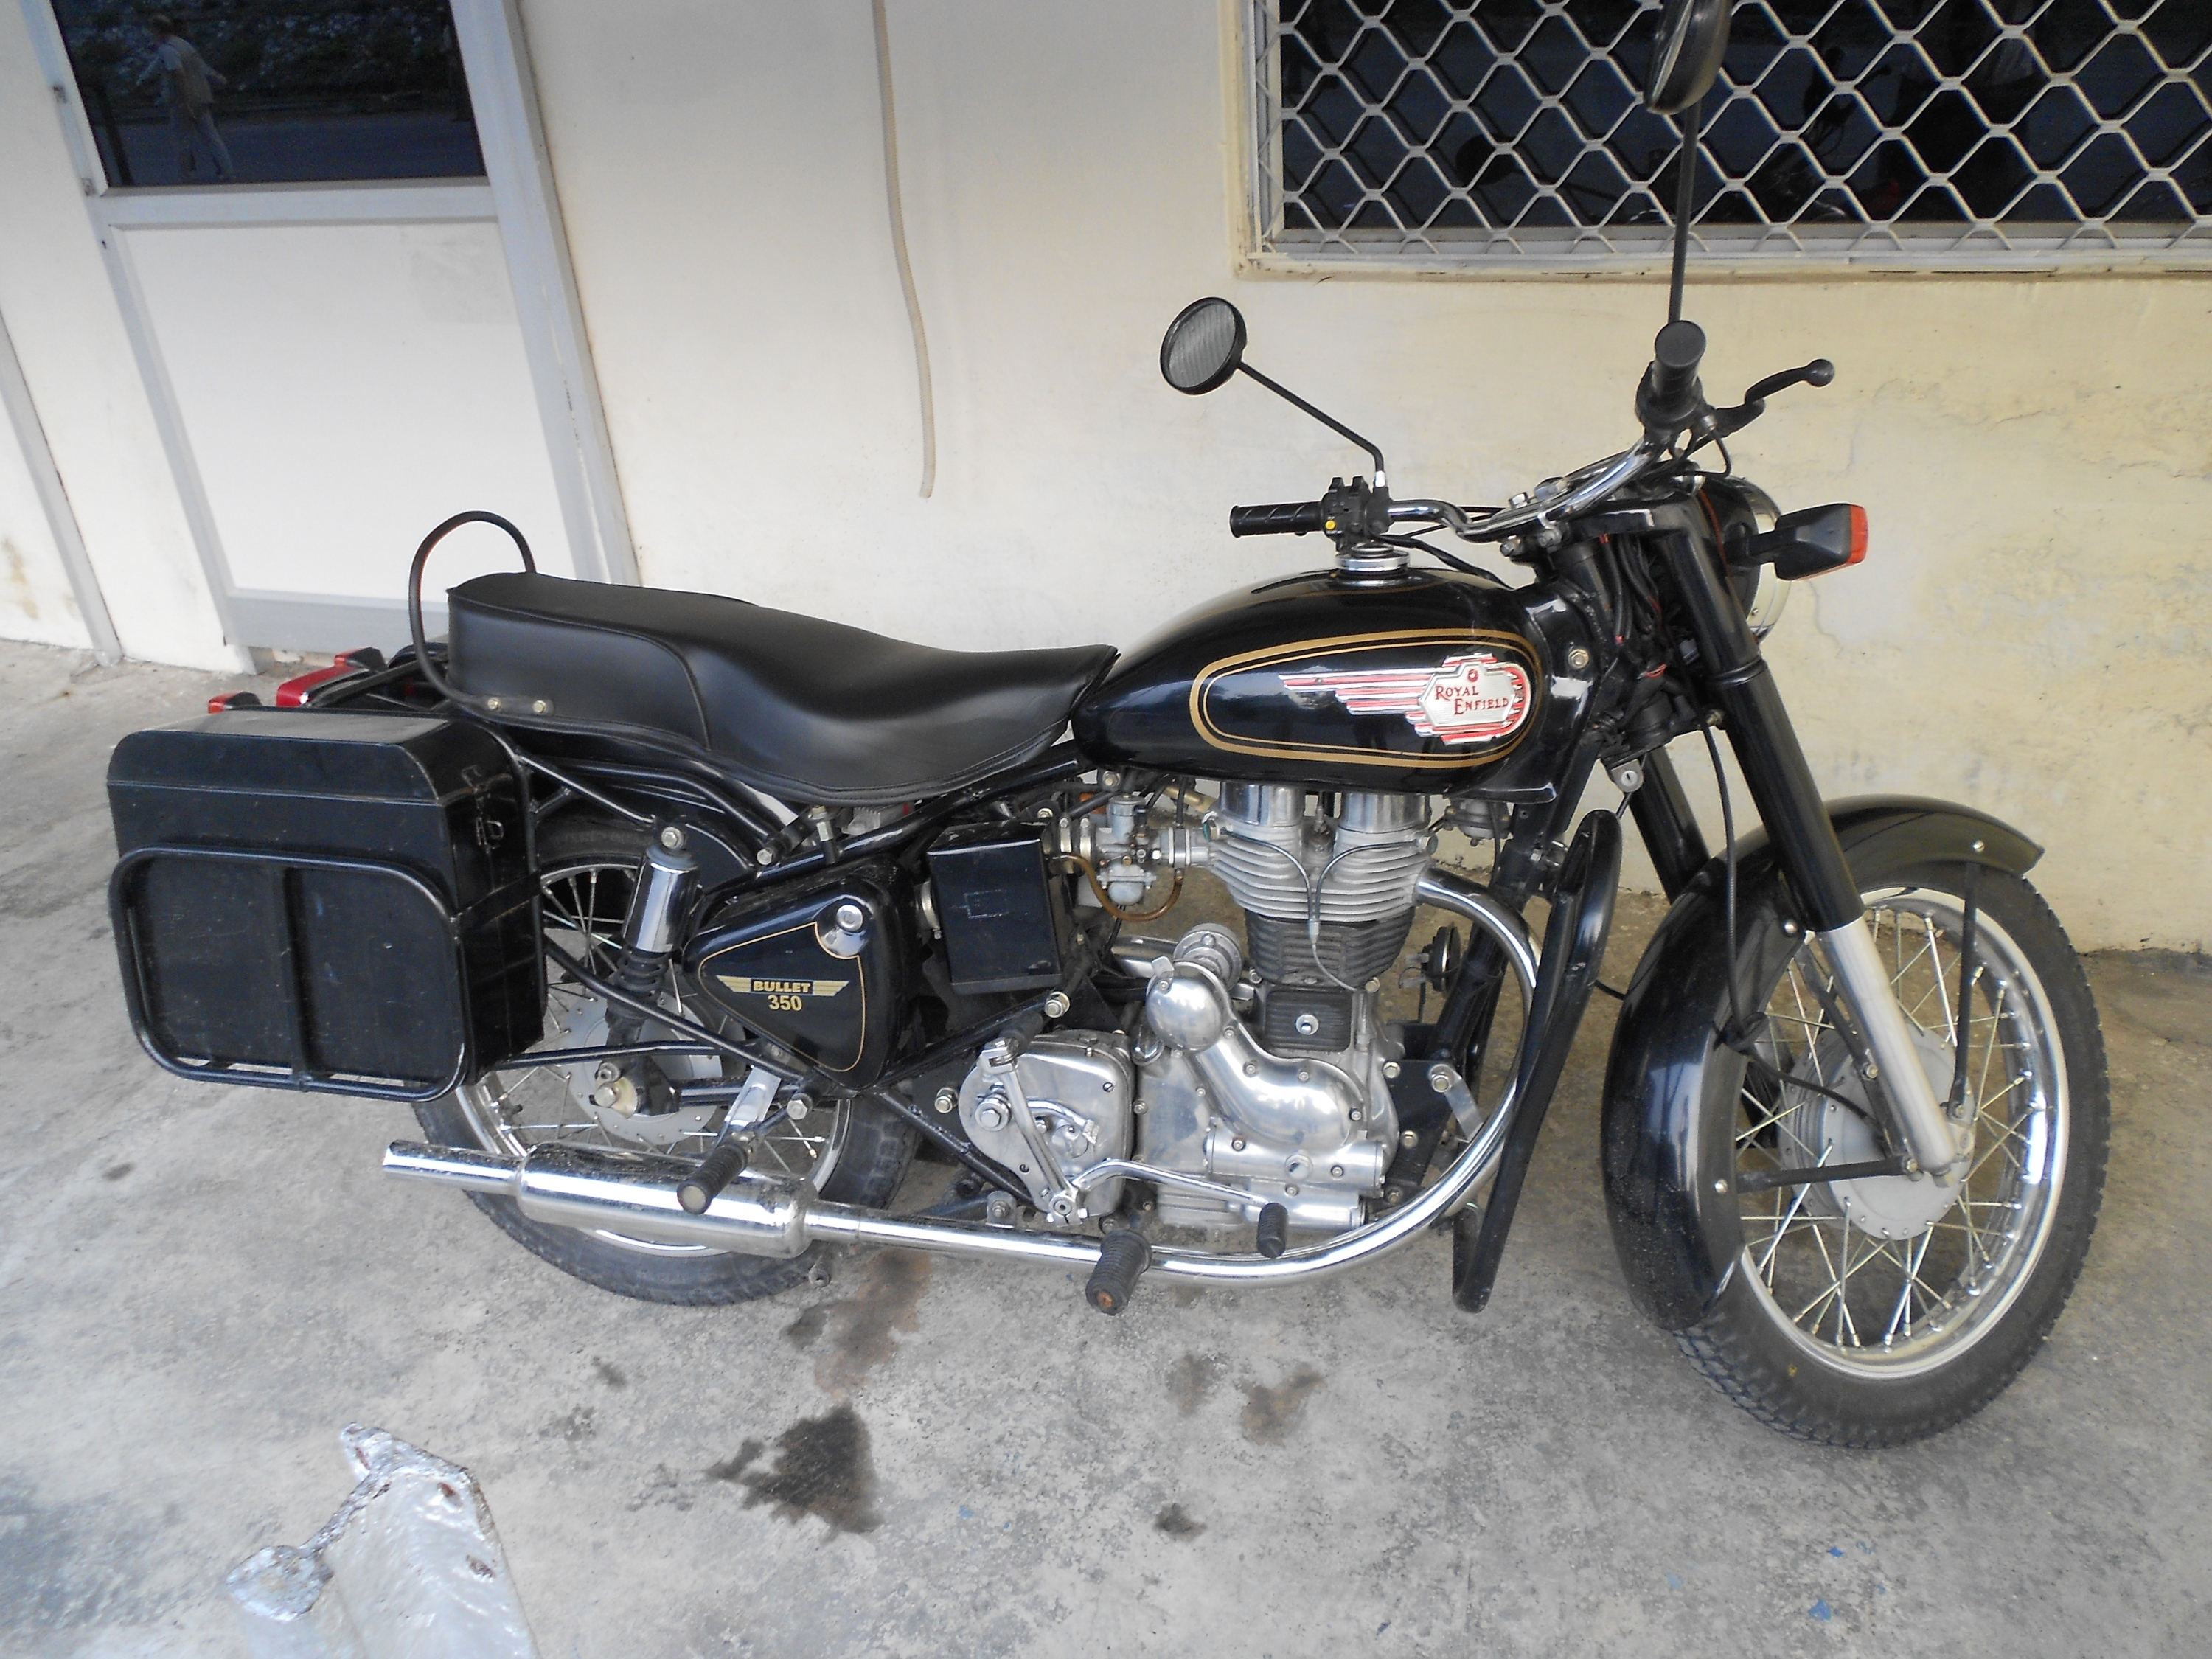 Royal Enfield Bullet 500 Army 1992 images #123384